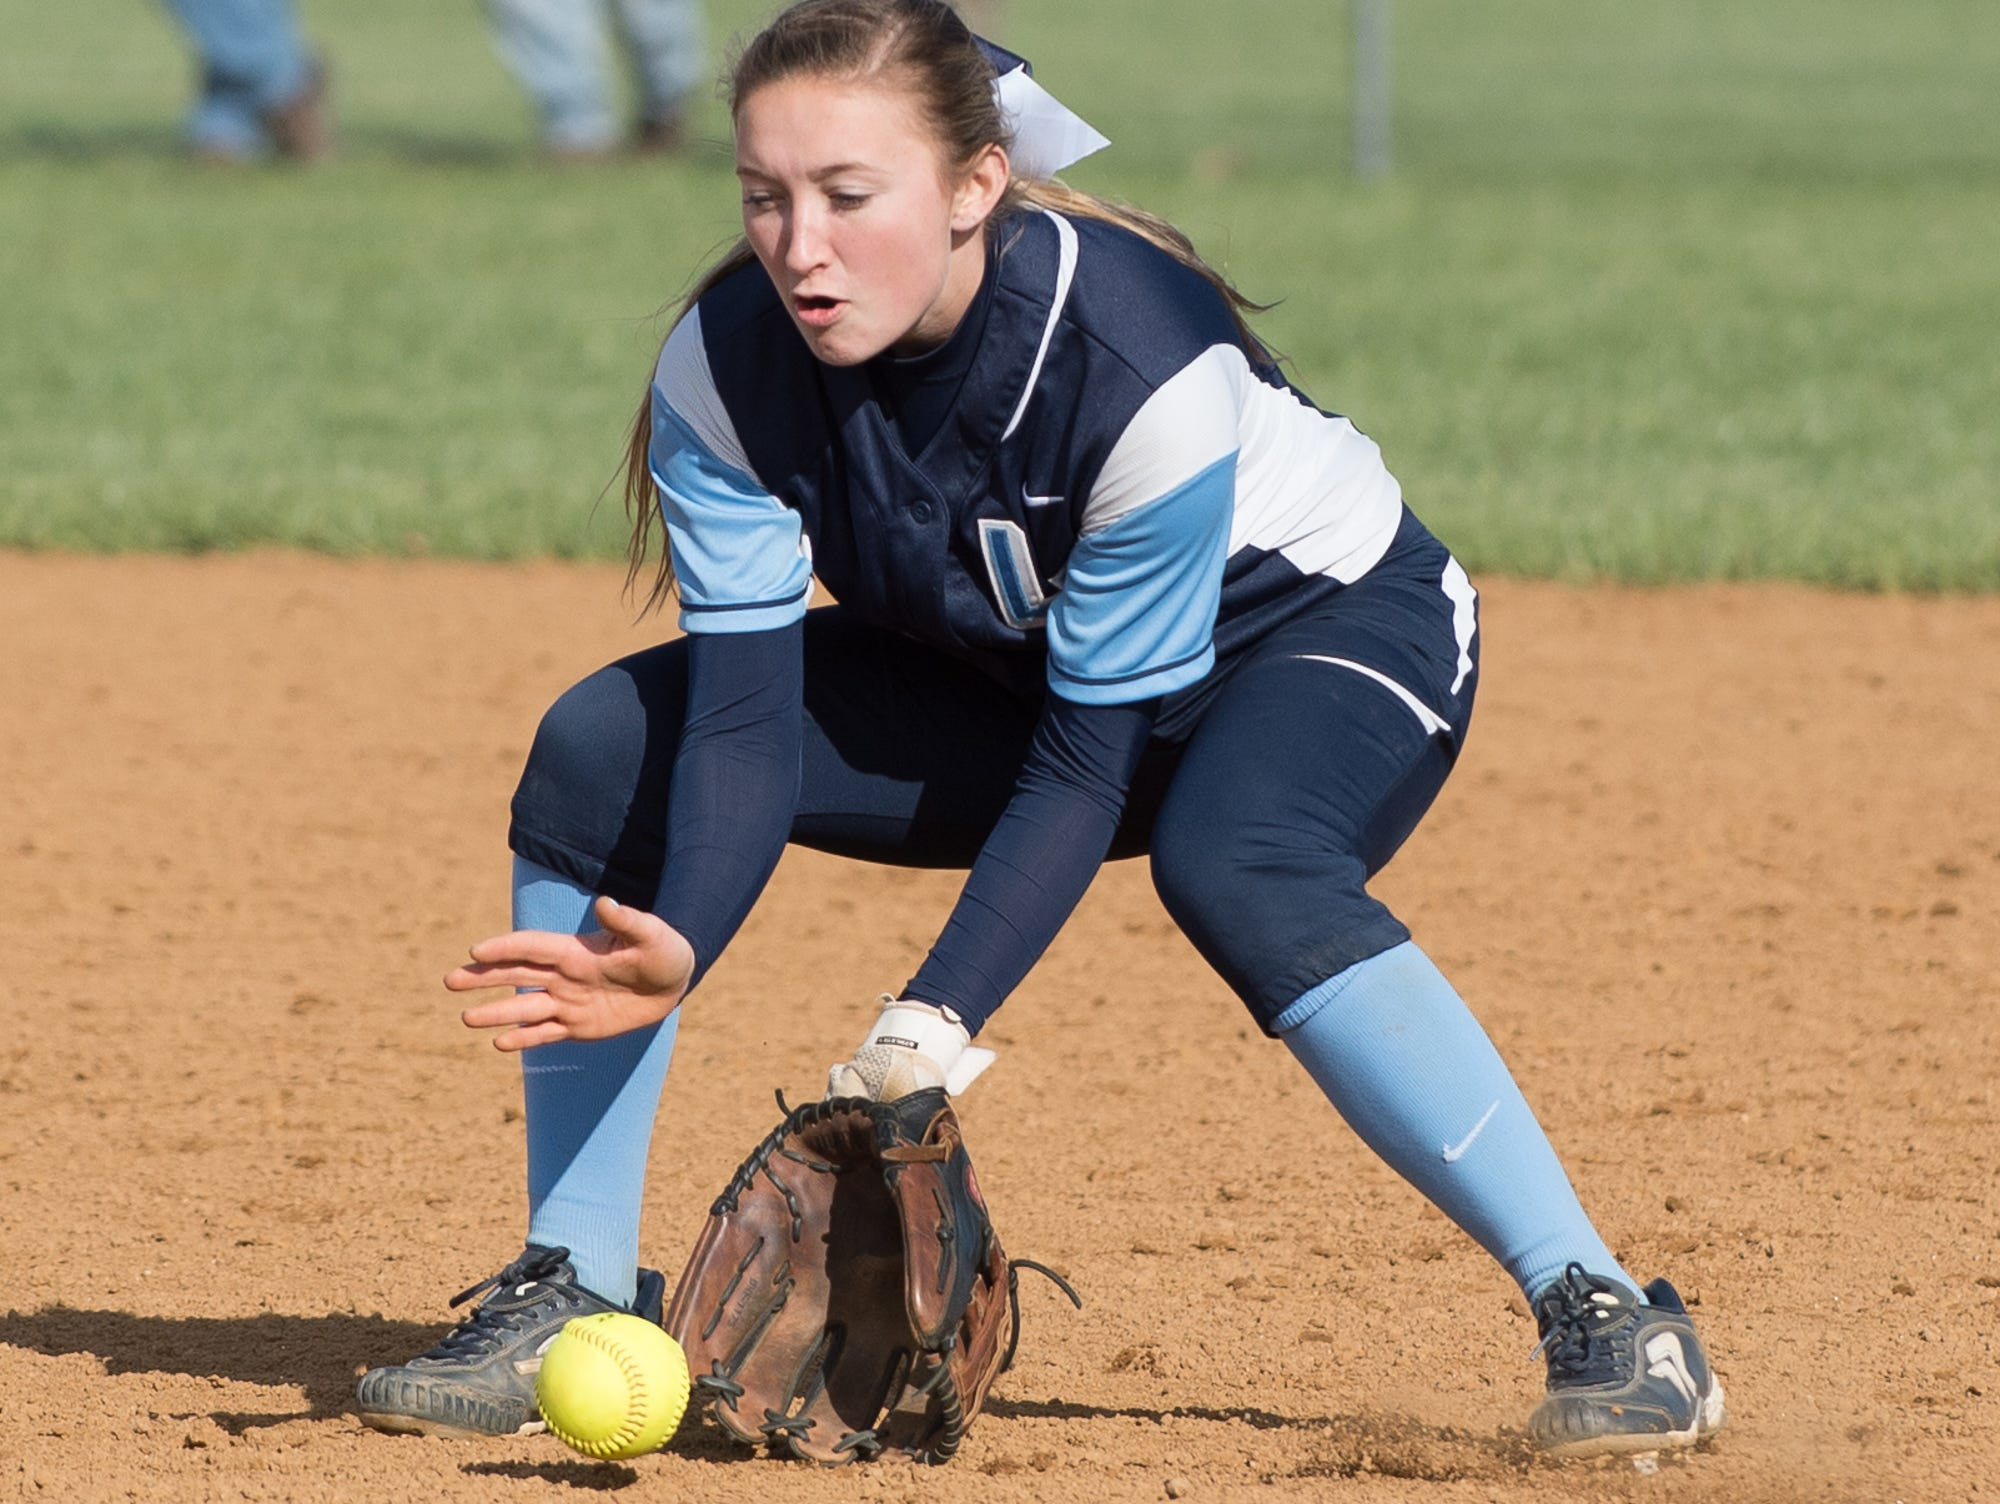 Lake Forest's Kaitlyn Stahre (4) catches a ground ball in their win over Red Lion.